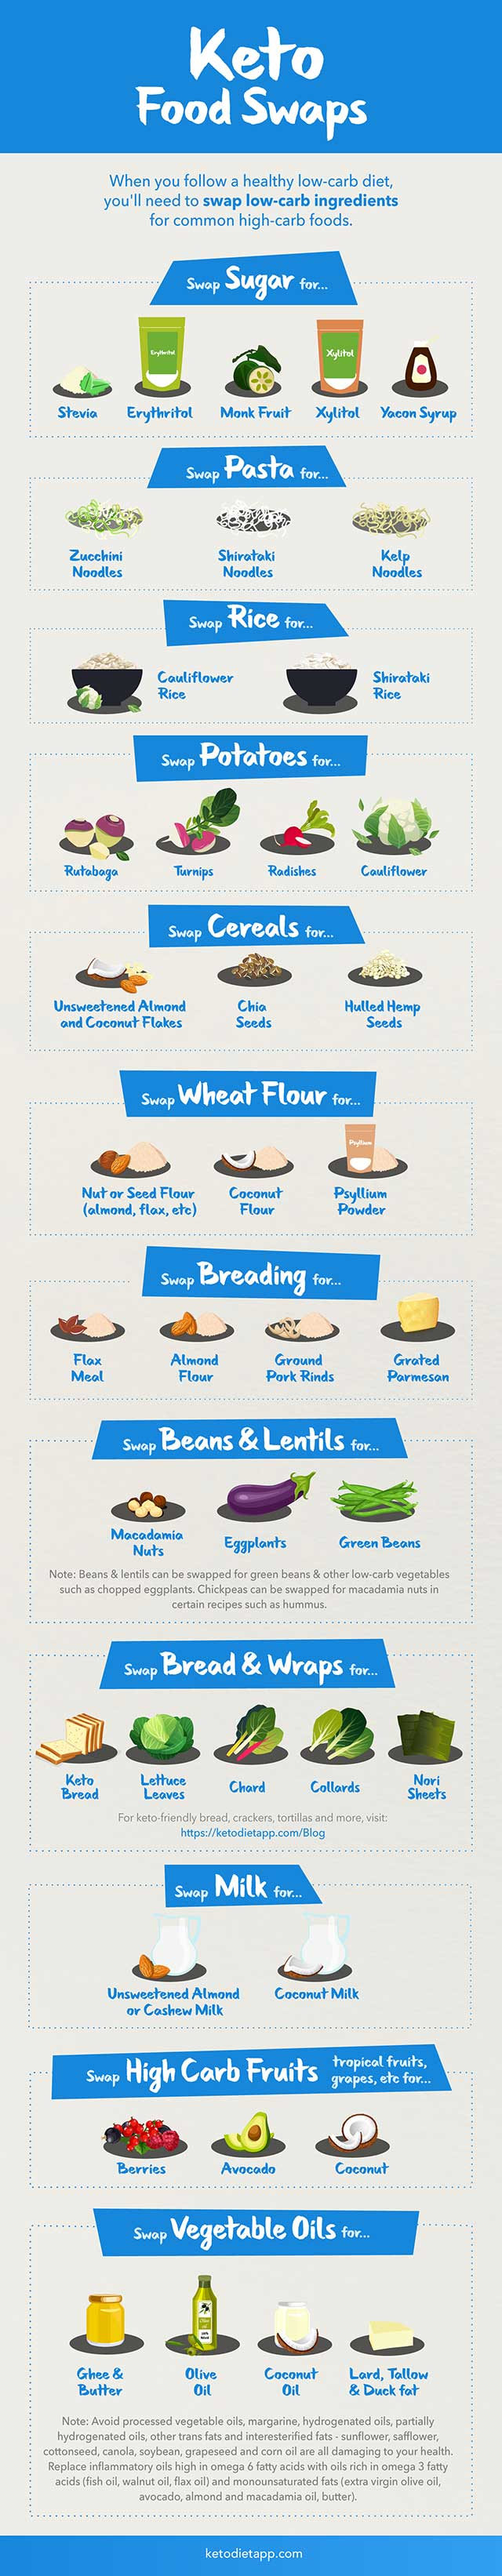 Keto Food Swaps Infographic